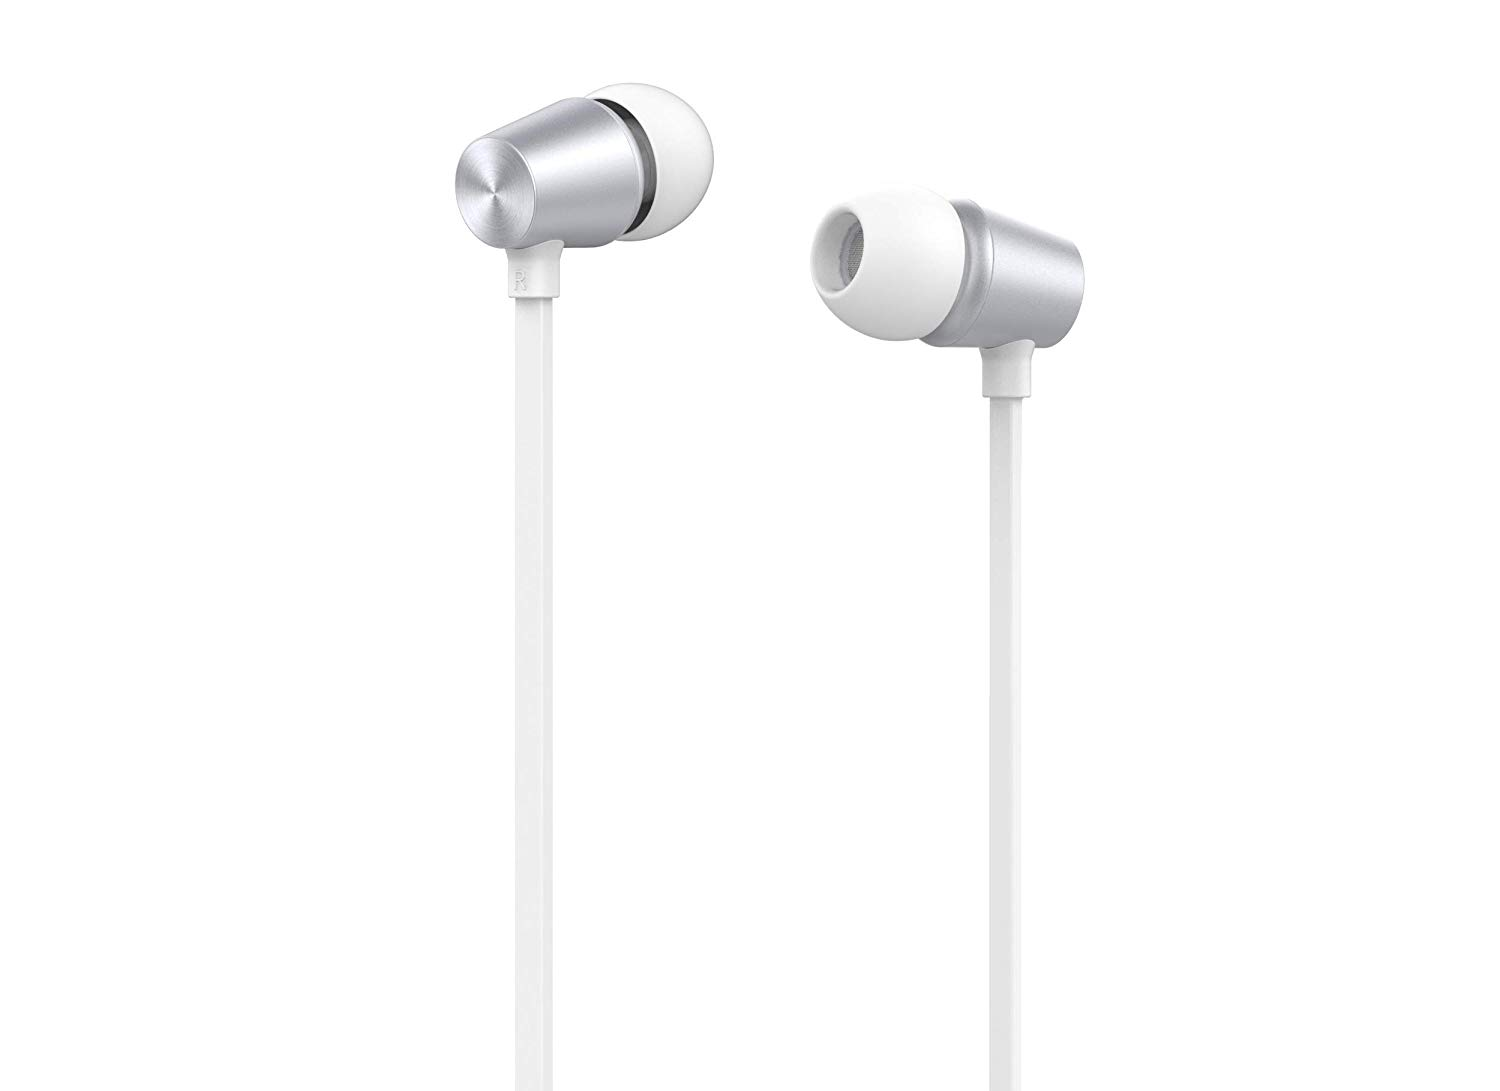 Pebble Crome Sweat-Proof Head Phone with Super Bass White